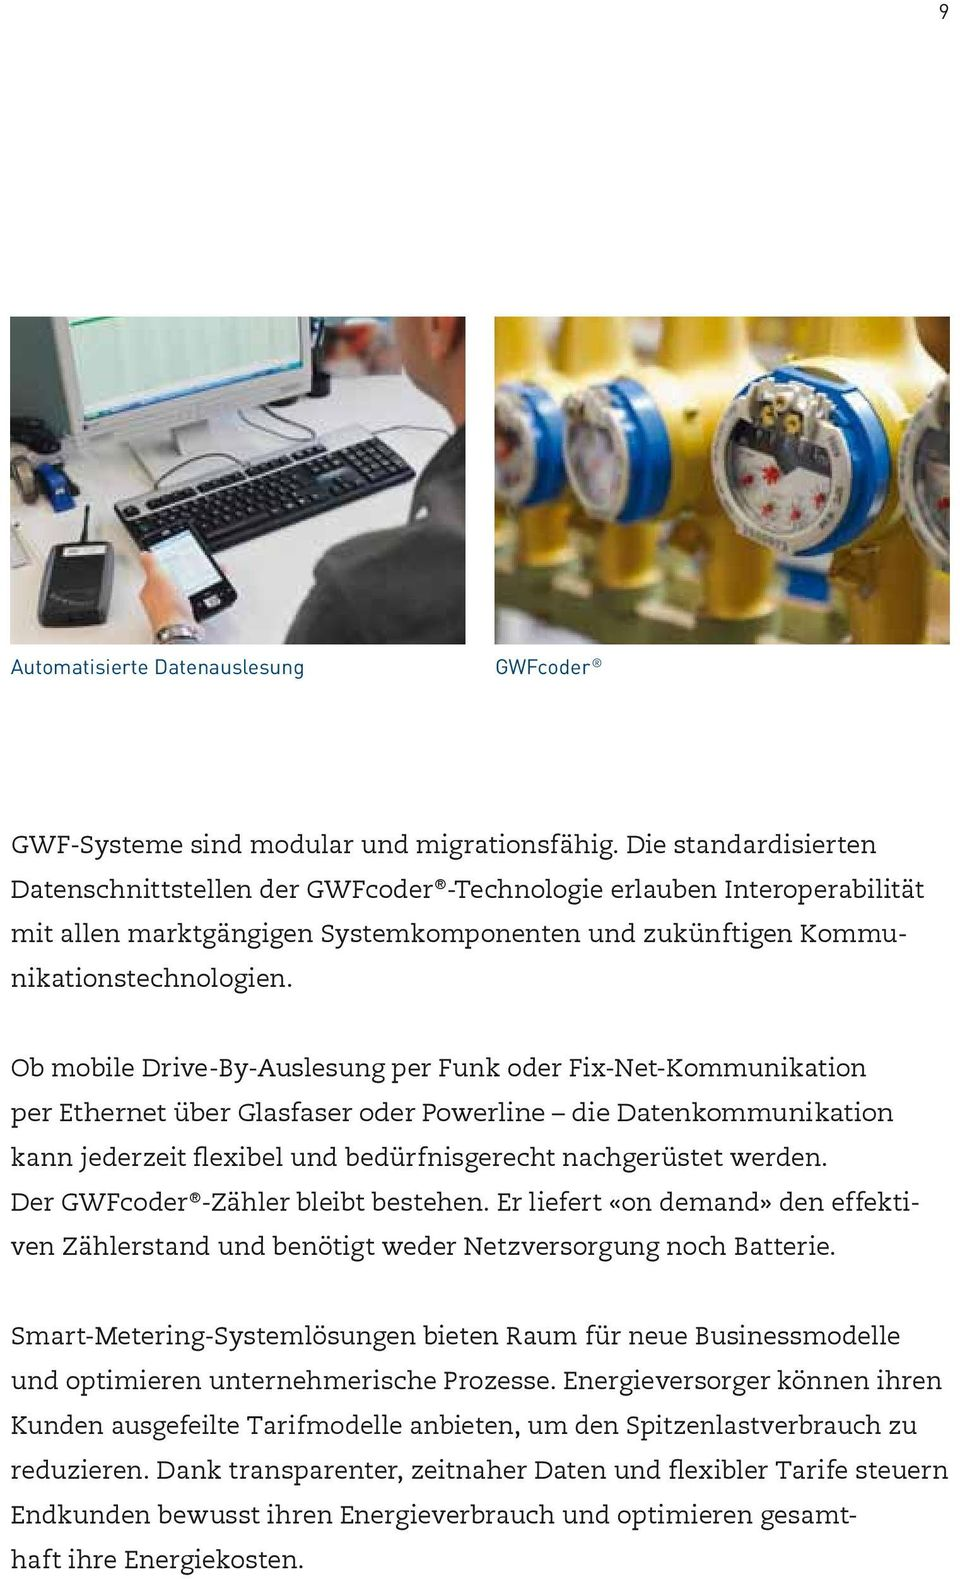 Ob mobile Drive-By-Auslesung per Funk oder Fix-Net-Kommunikation per Ethernet über Glasfaser oder Powerline die Datenkommunikation kann jederzeit flexibel und bedürfnisgerecht nachgerüstet werden.